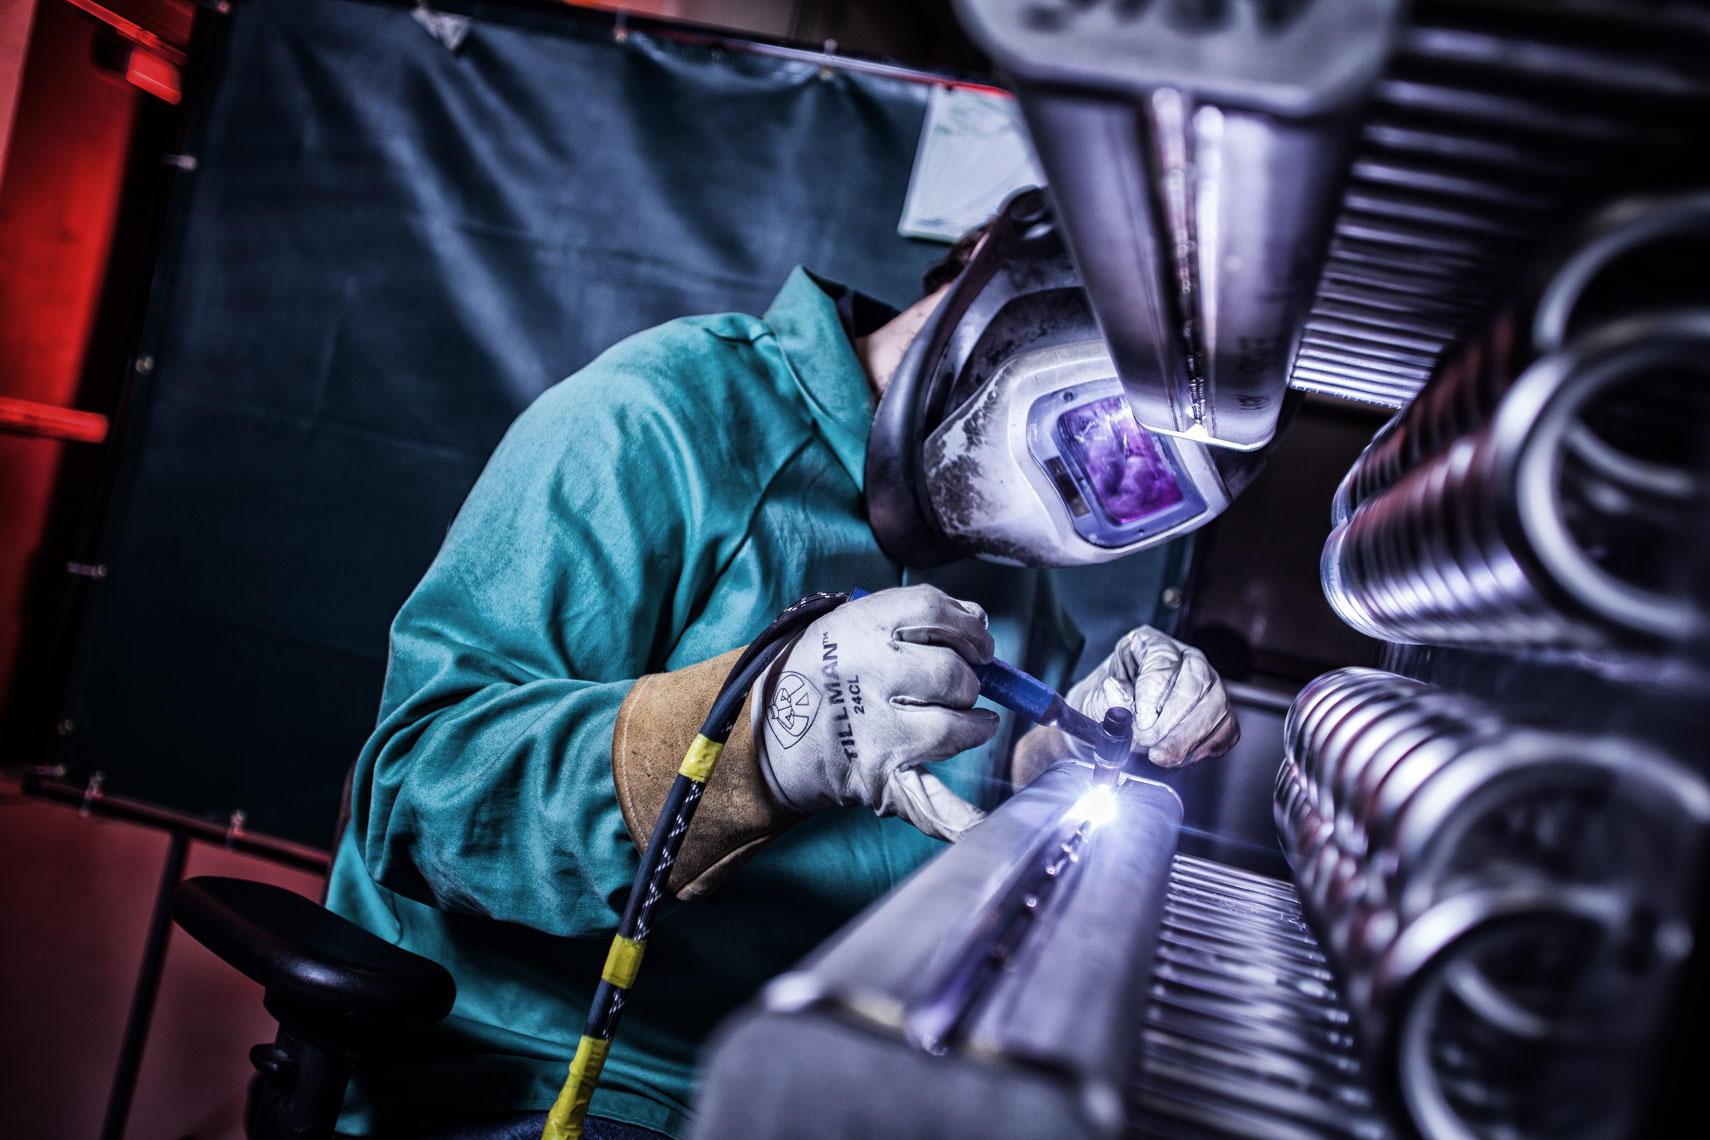 Welding/Speedglass/coils/manufacturing photography